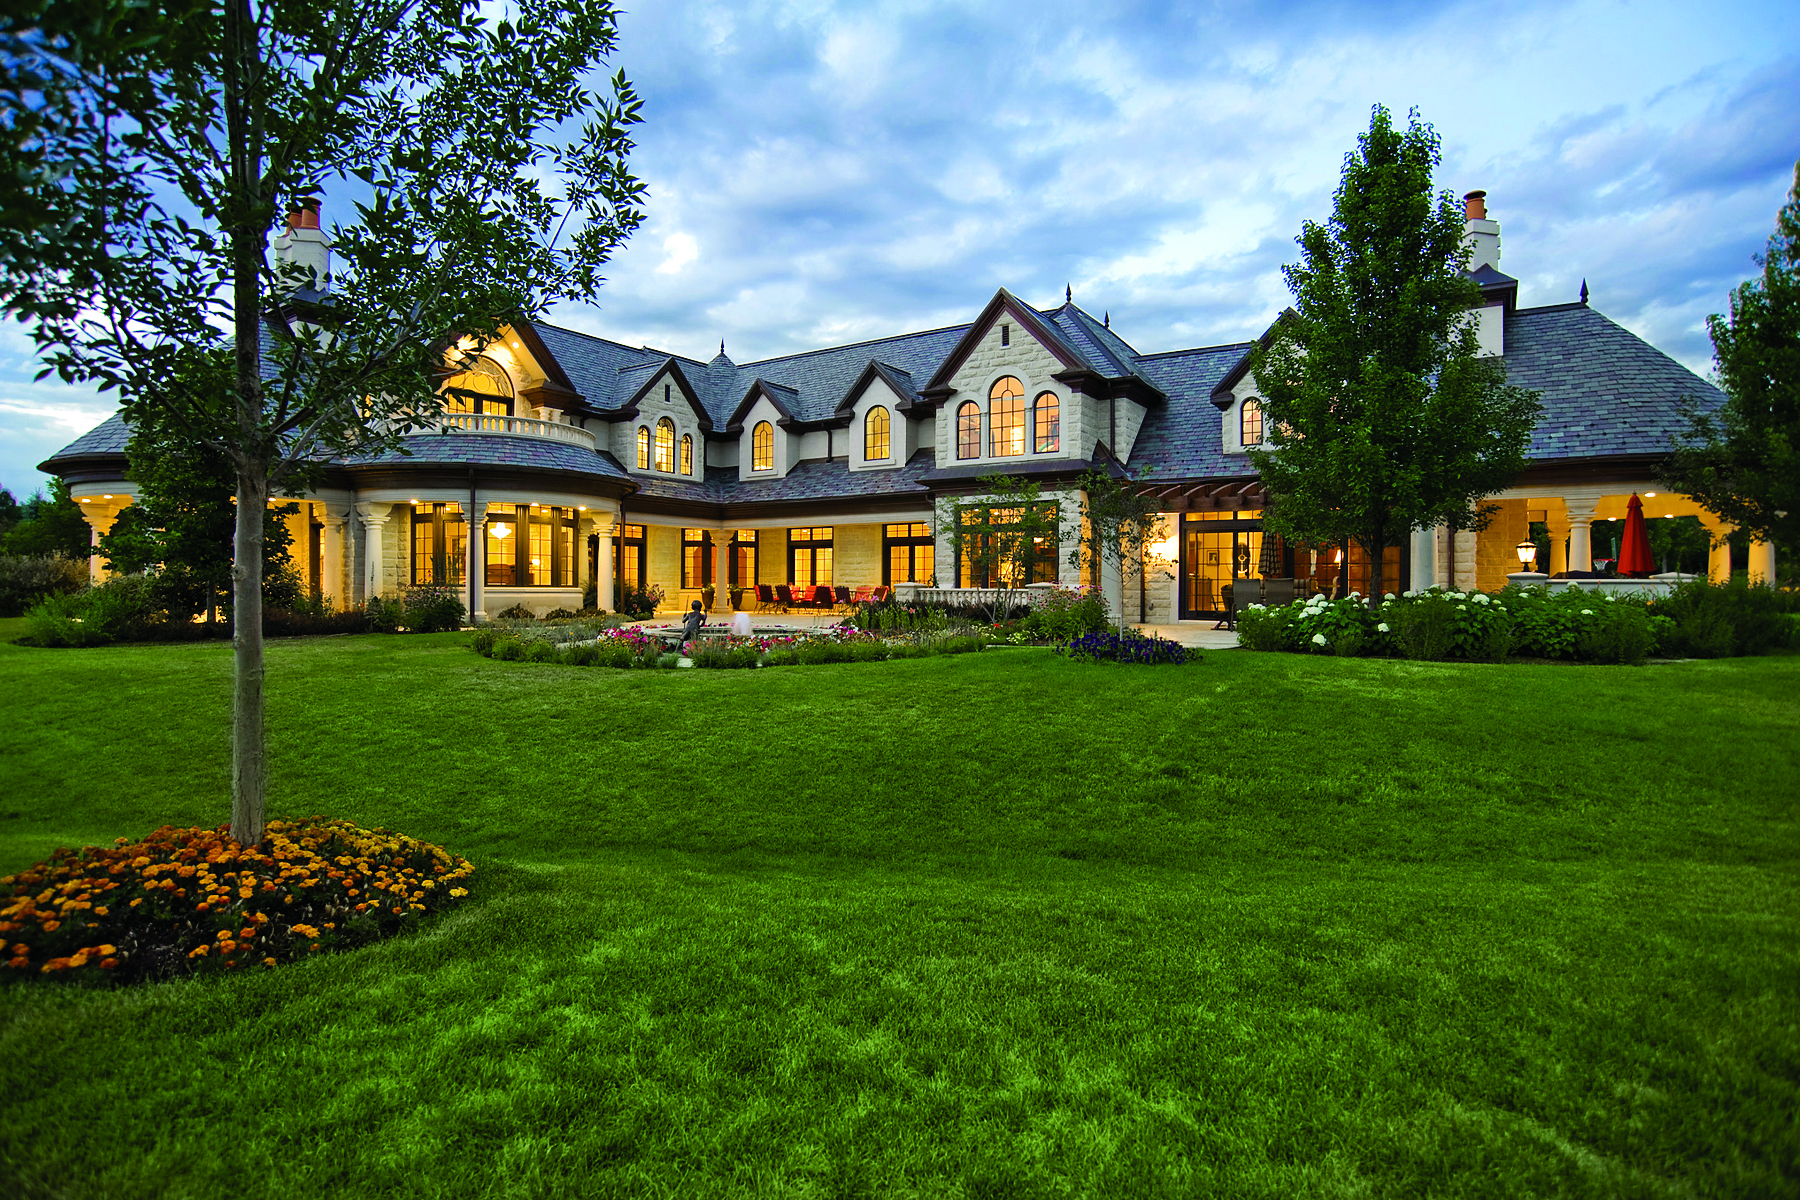 18 Cherry Hills Park Drive, Cherry Hills Village, Colorado. Listed by LIV Sotheby's International Realty for $4.9M.